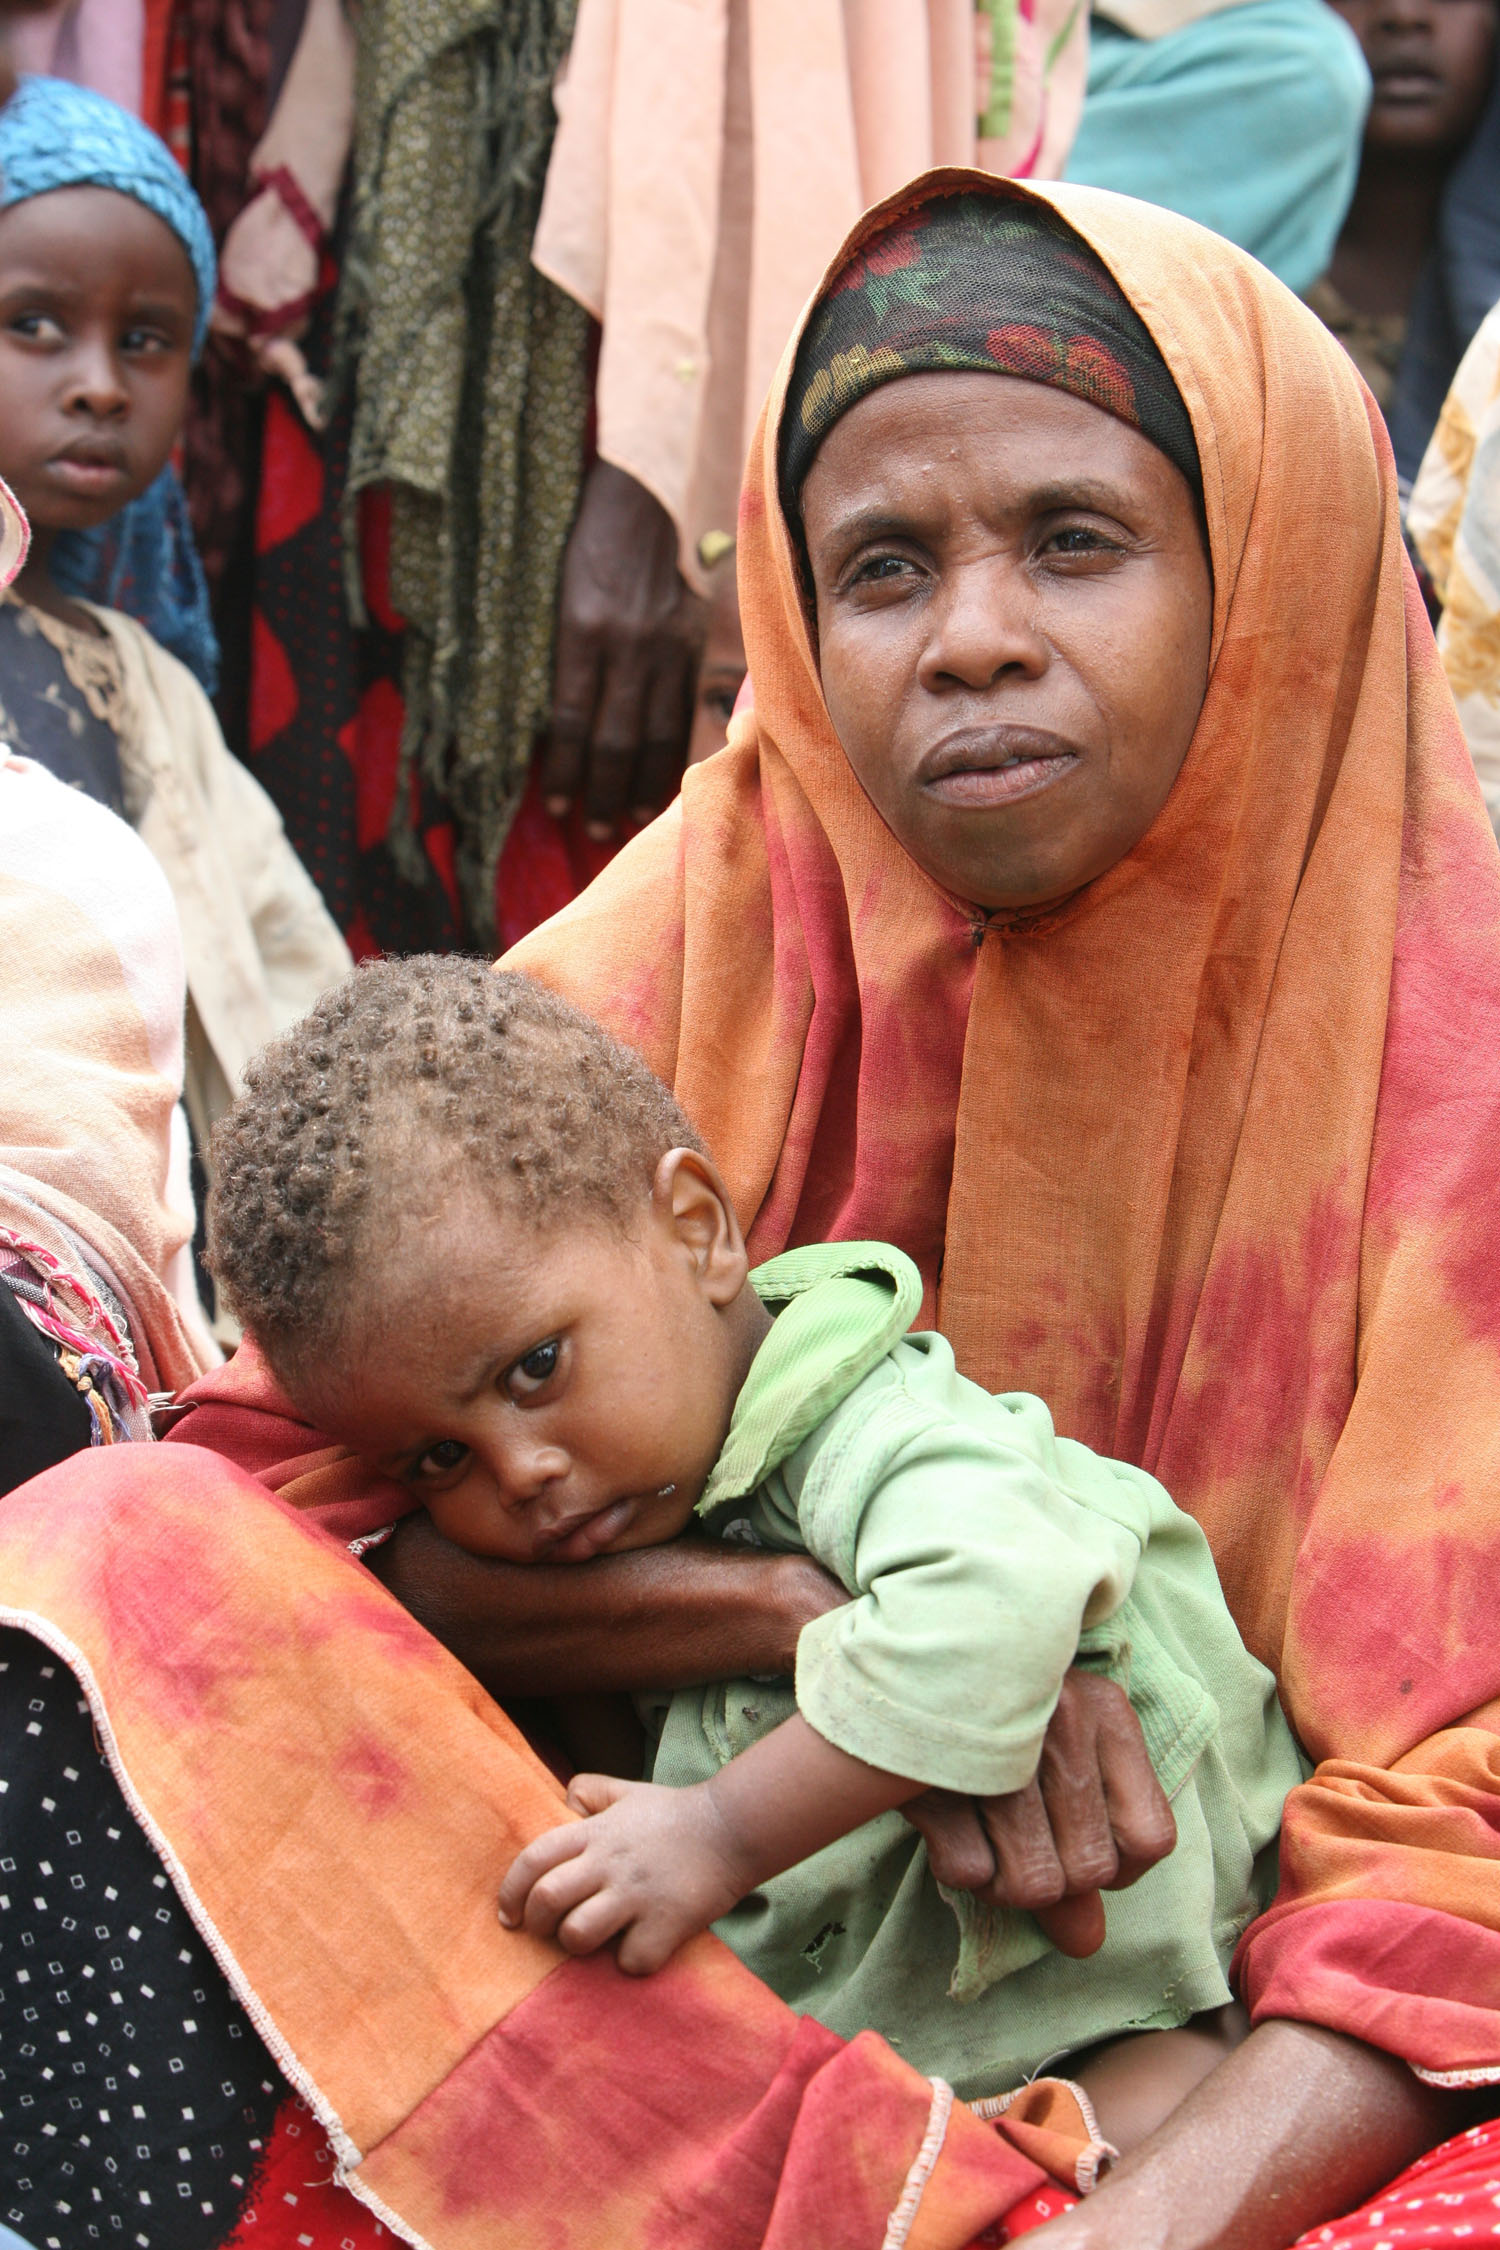 A mother and son wait for food in Jowhar, Somalia, September 2007. Tens of thousands of Somalis who fled the violence in the capital are facing yet another humanitarian crisis, a debilitating food shortage after poor rains.